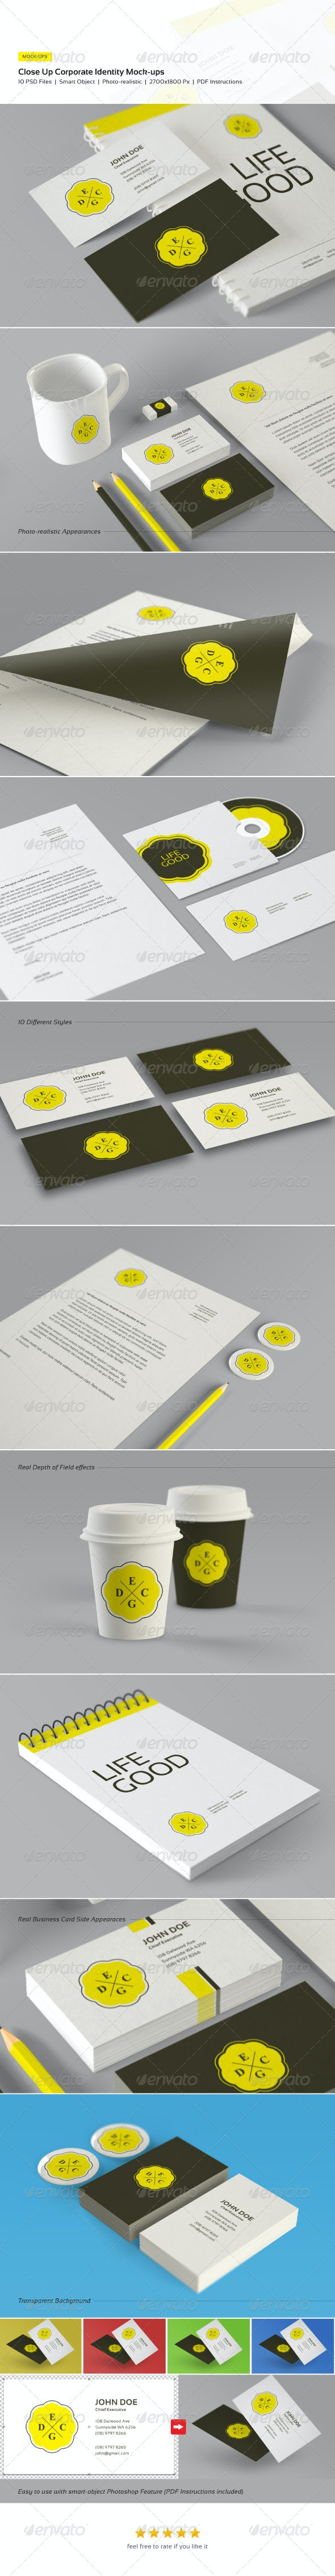 Close Up Corporate Identity and Branding Mock-Ups - Stationery Print